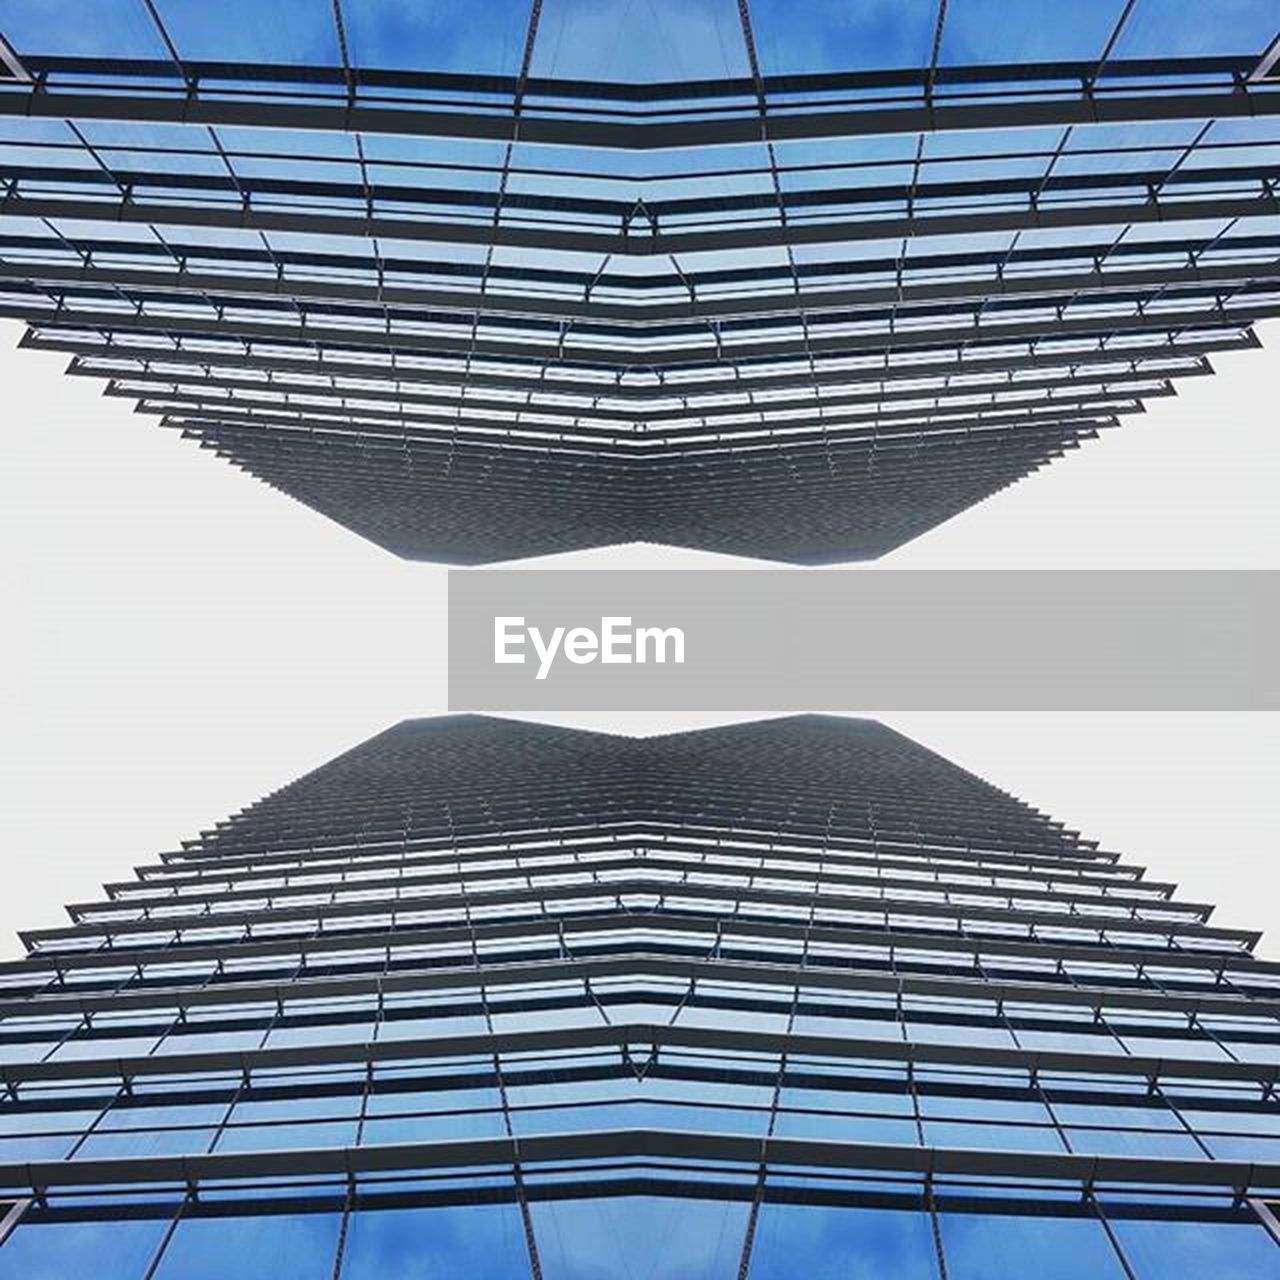 architecture, building exterior, built structure, modern, day, outdoors, no people, roof, business finance and industry, skyscraper, sky, business, clear sky, futuristic, city